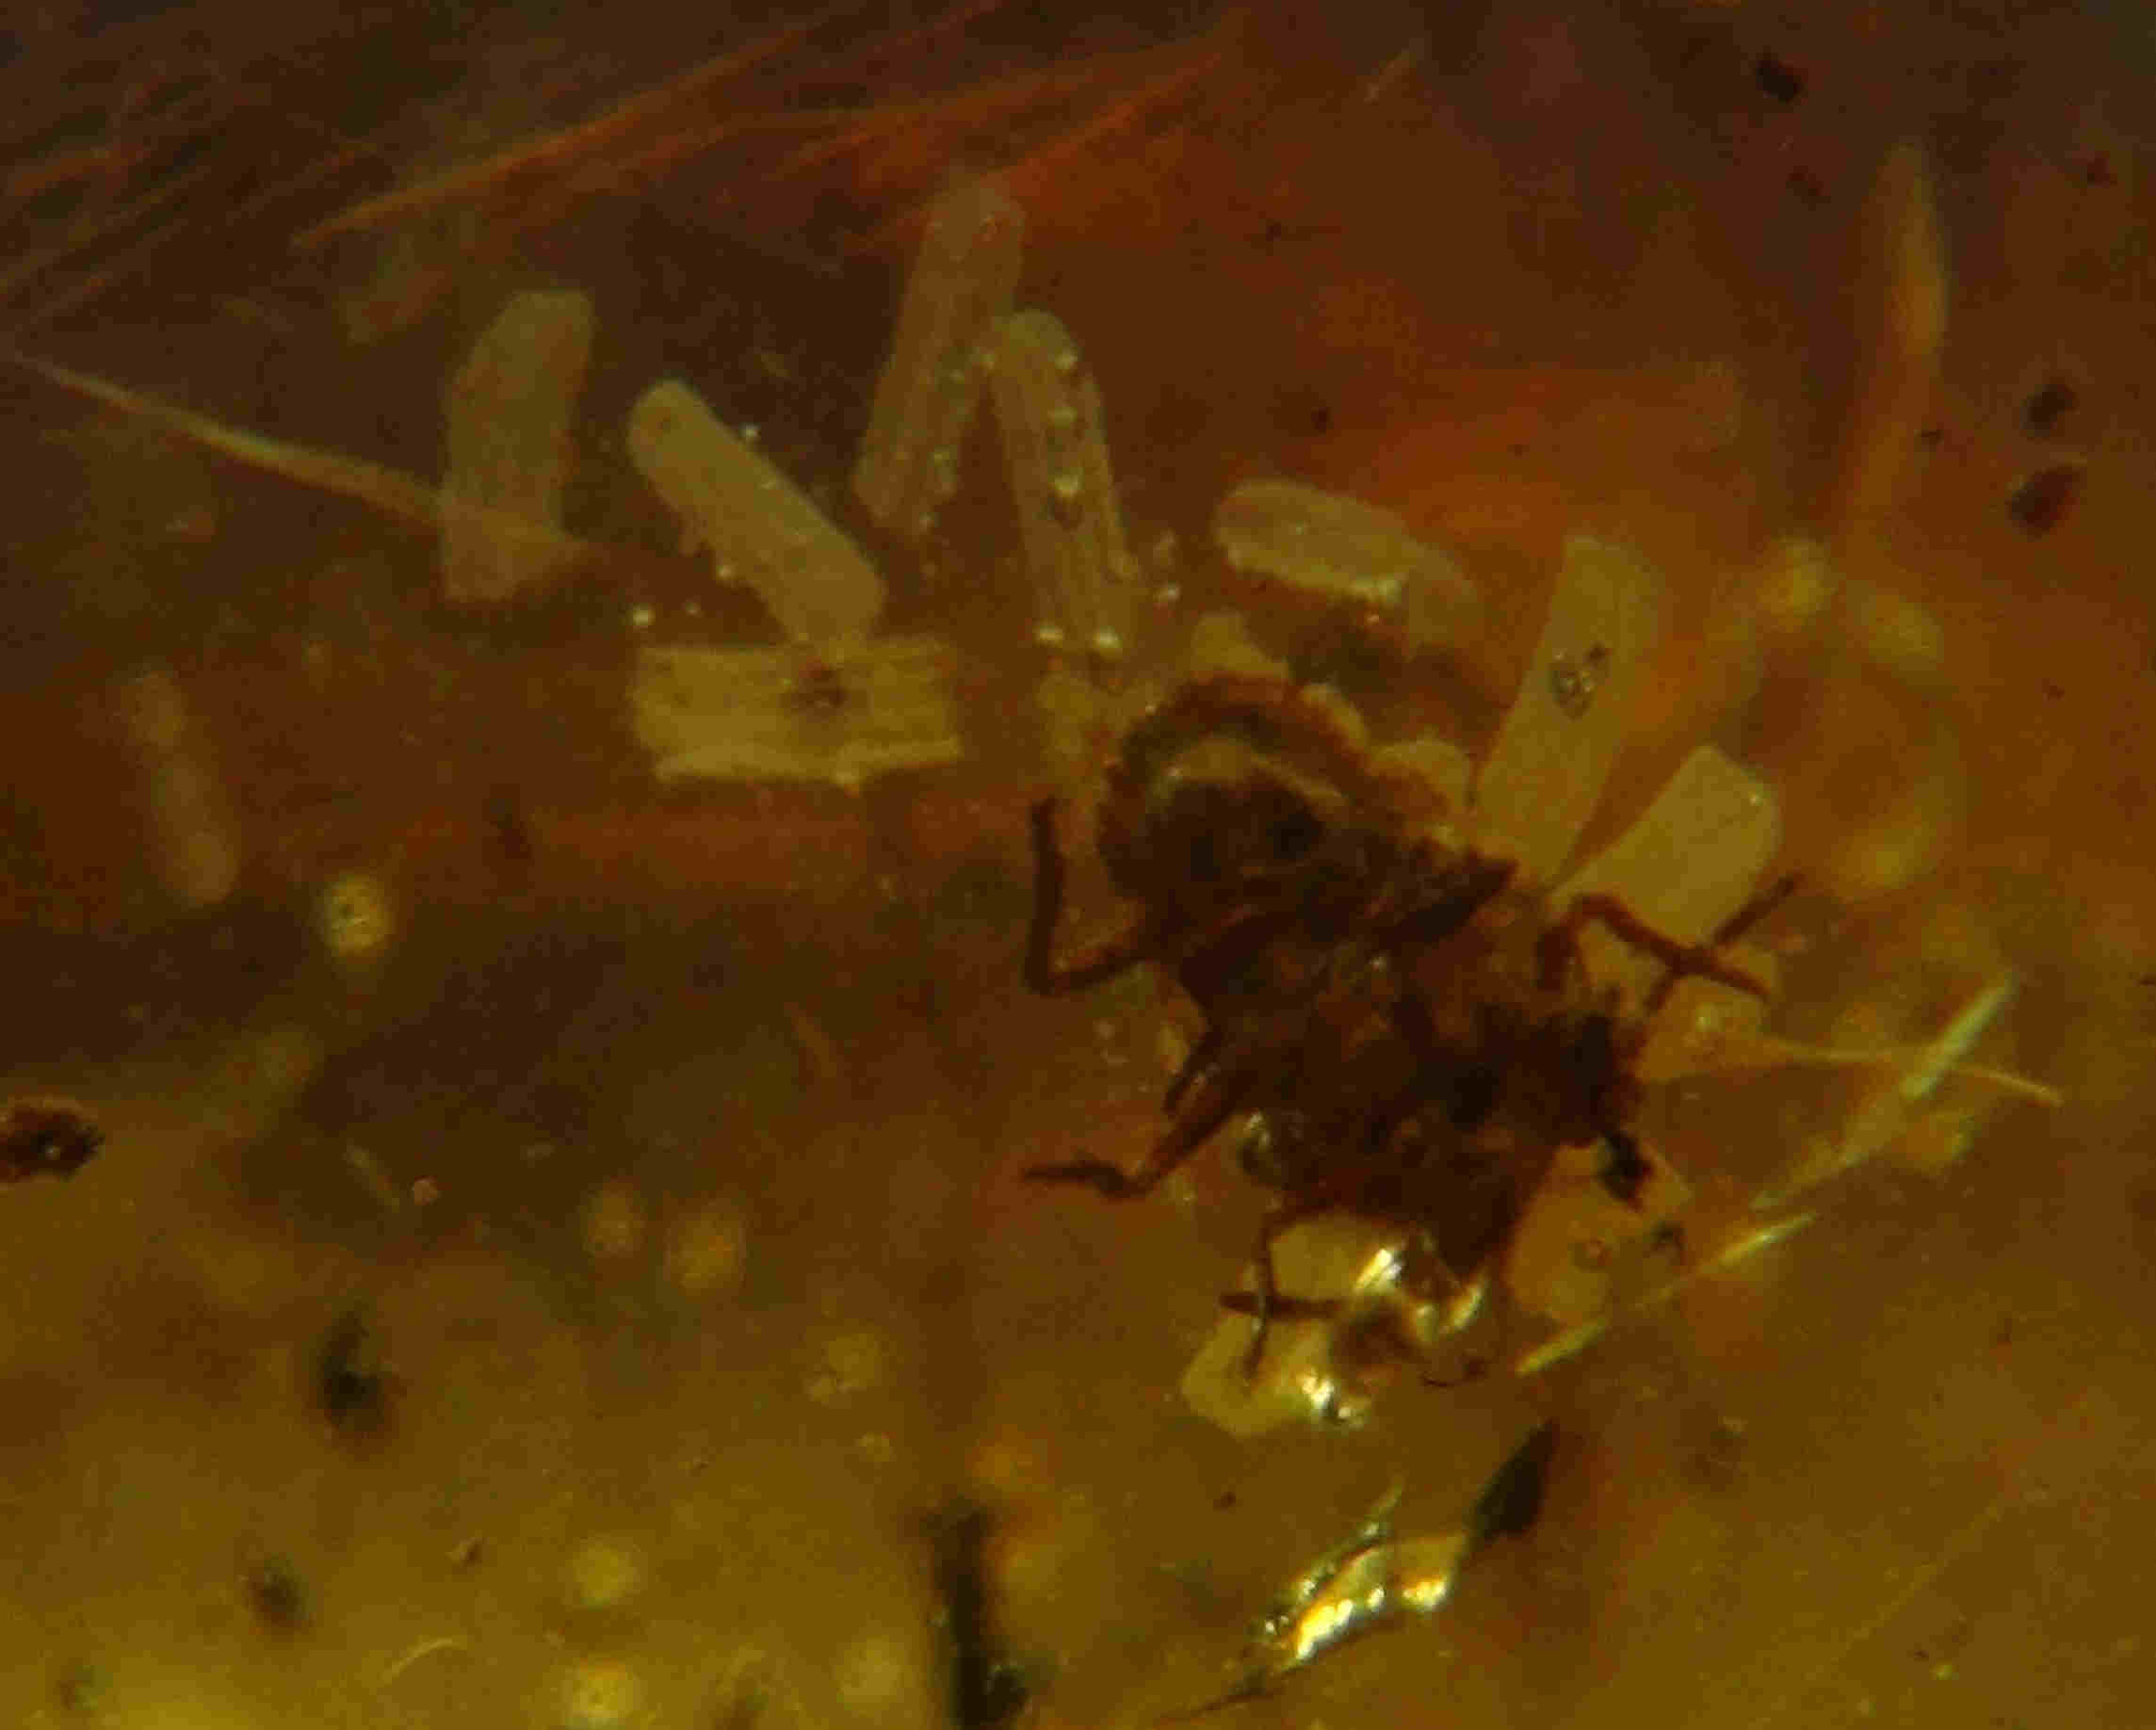 Spider with eggs in amber